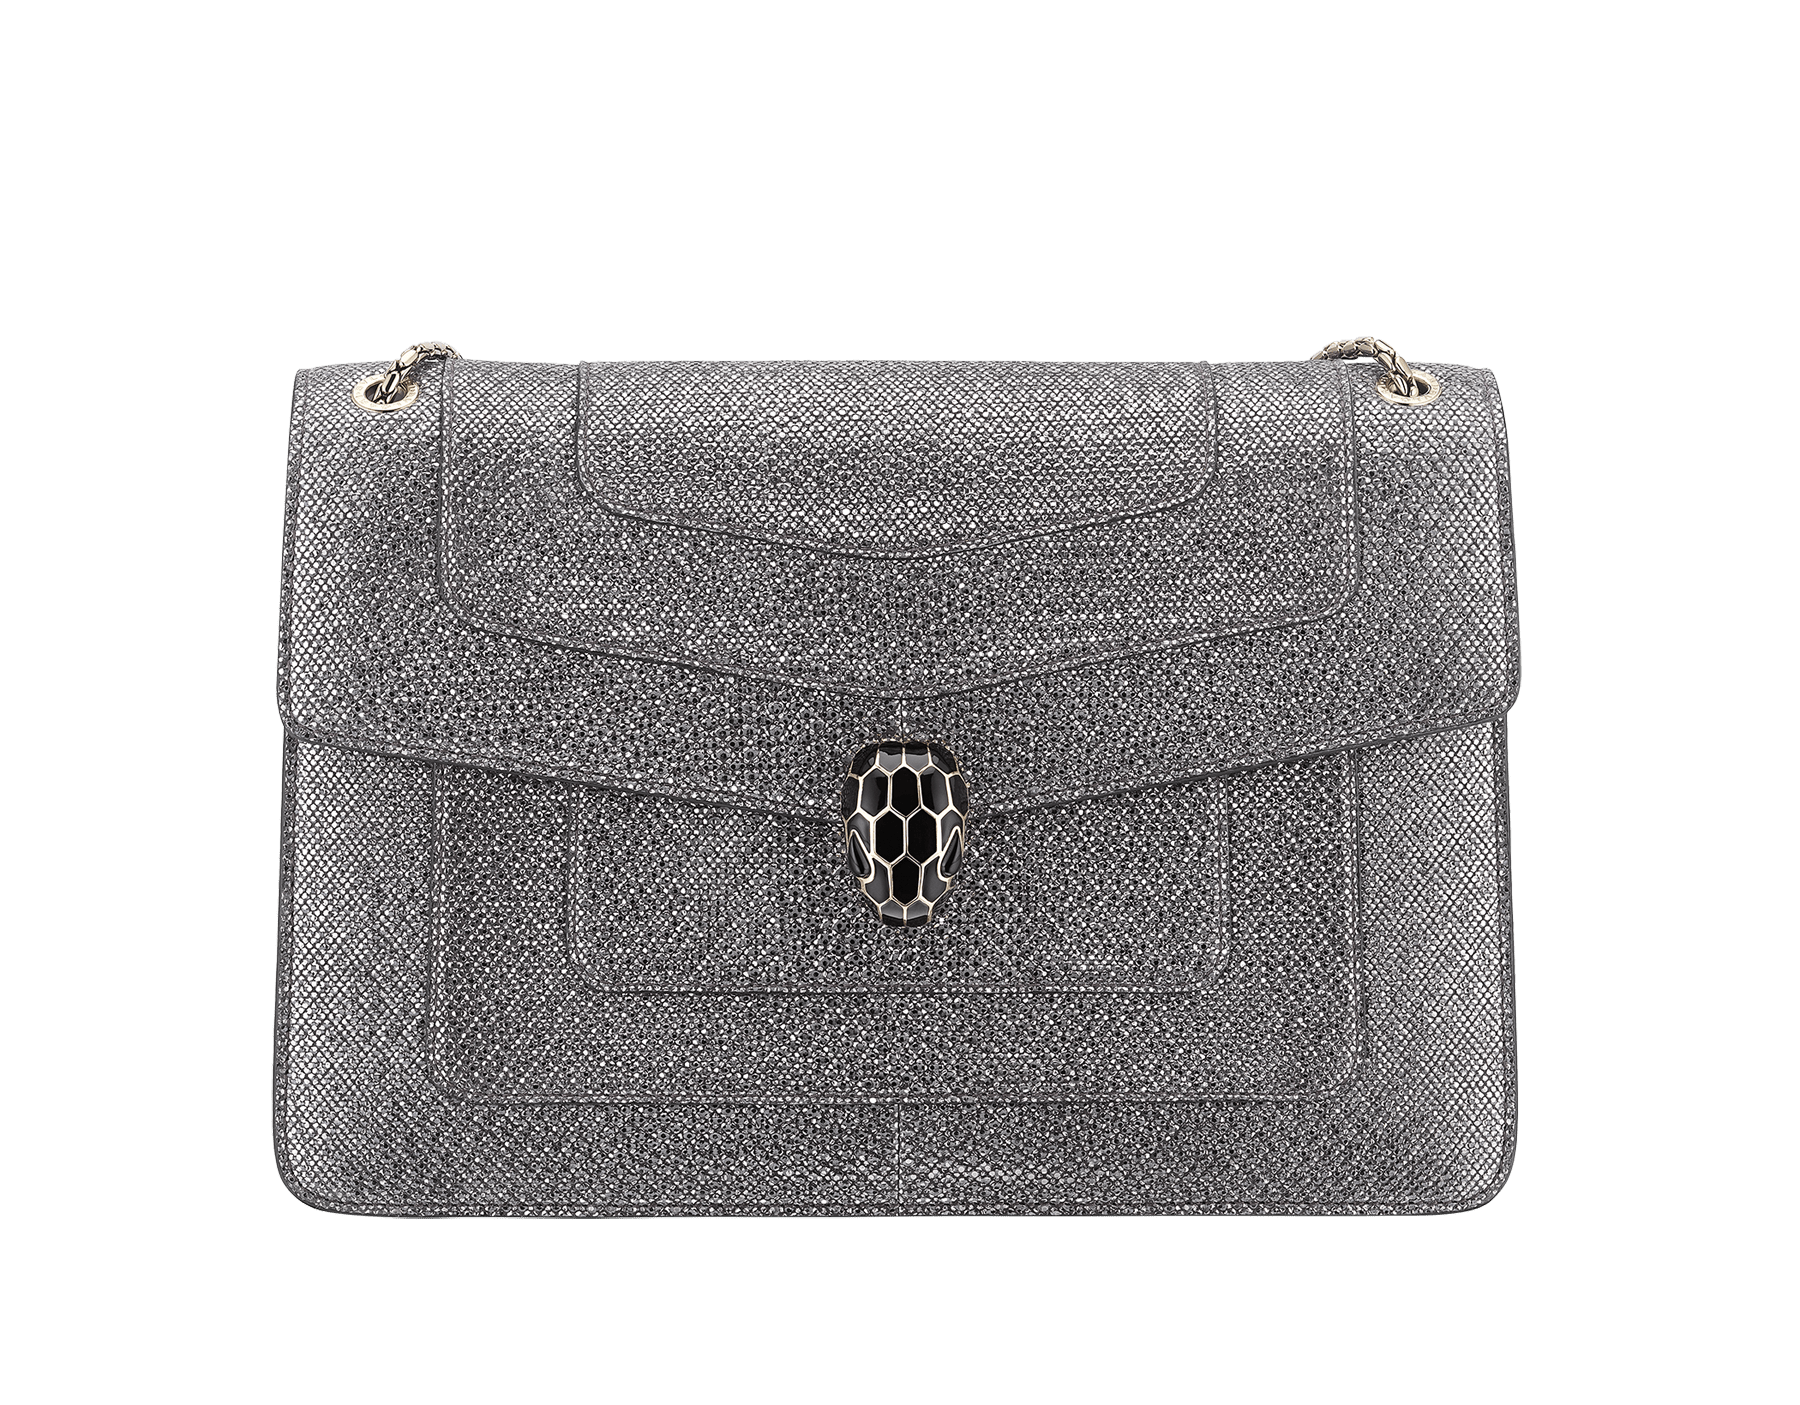 """""""Serpenti Forever"""" shoulder bag in Charcoal Diamond grey metallic karung skin with Charcoal Diamond grey nappa leather internal lining. Tempting snakehead closure light gold plated brass enriched with black and glitter Hawk's Eye grey enamel and black onyx eyes. 1089-MK image 1"""